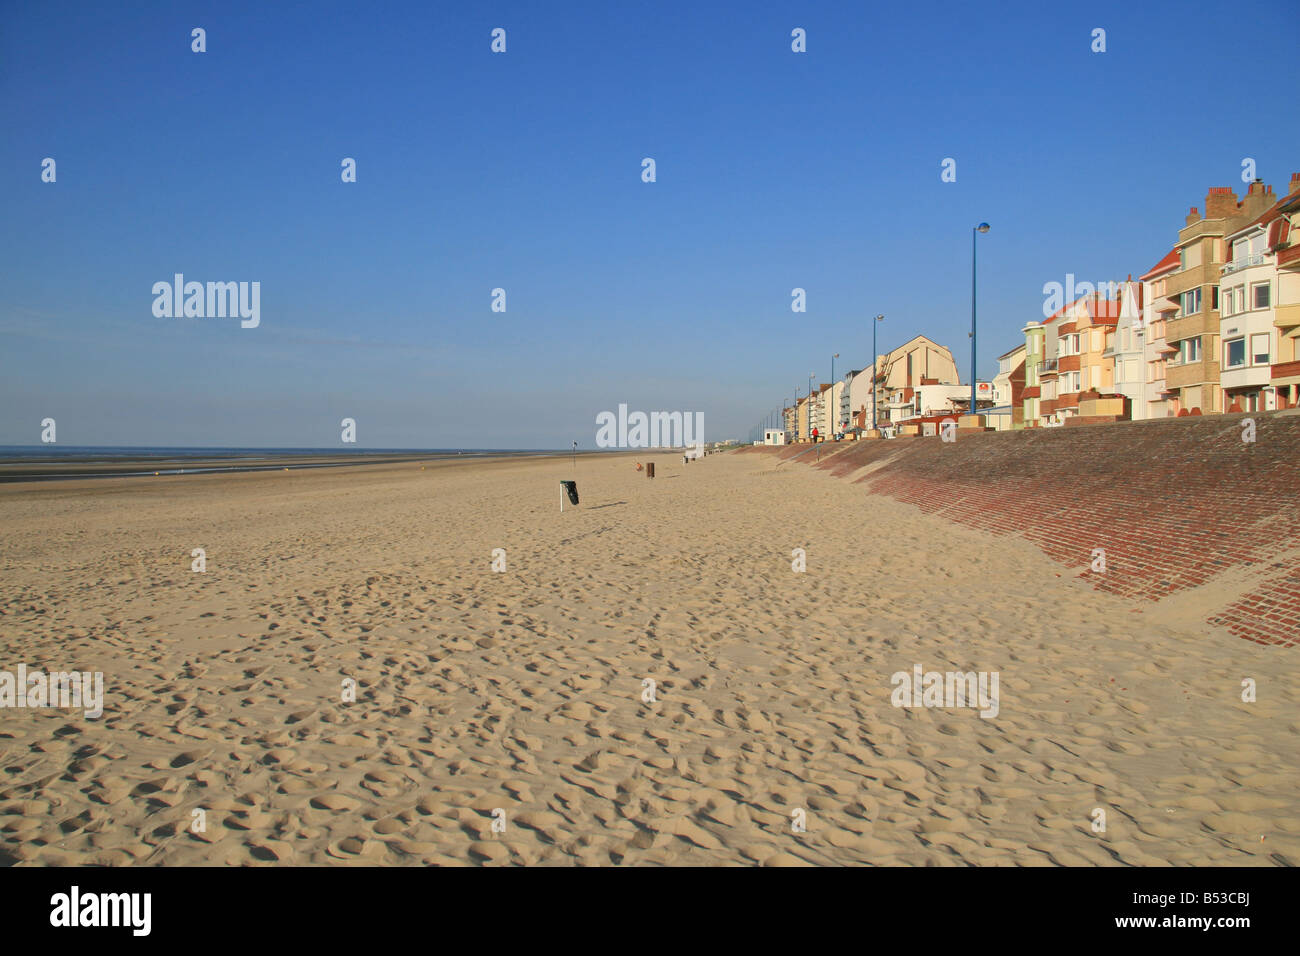 The view east (in direction of Belgium) along the beach at Dunkerque (Dunkirk), northern France. - Stock Image